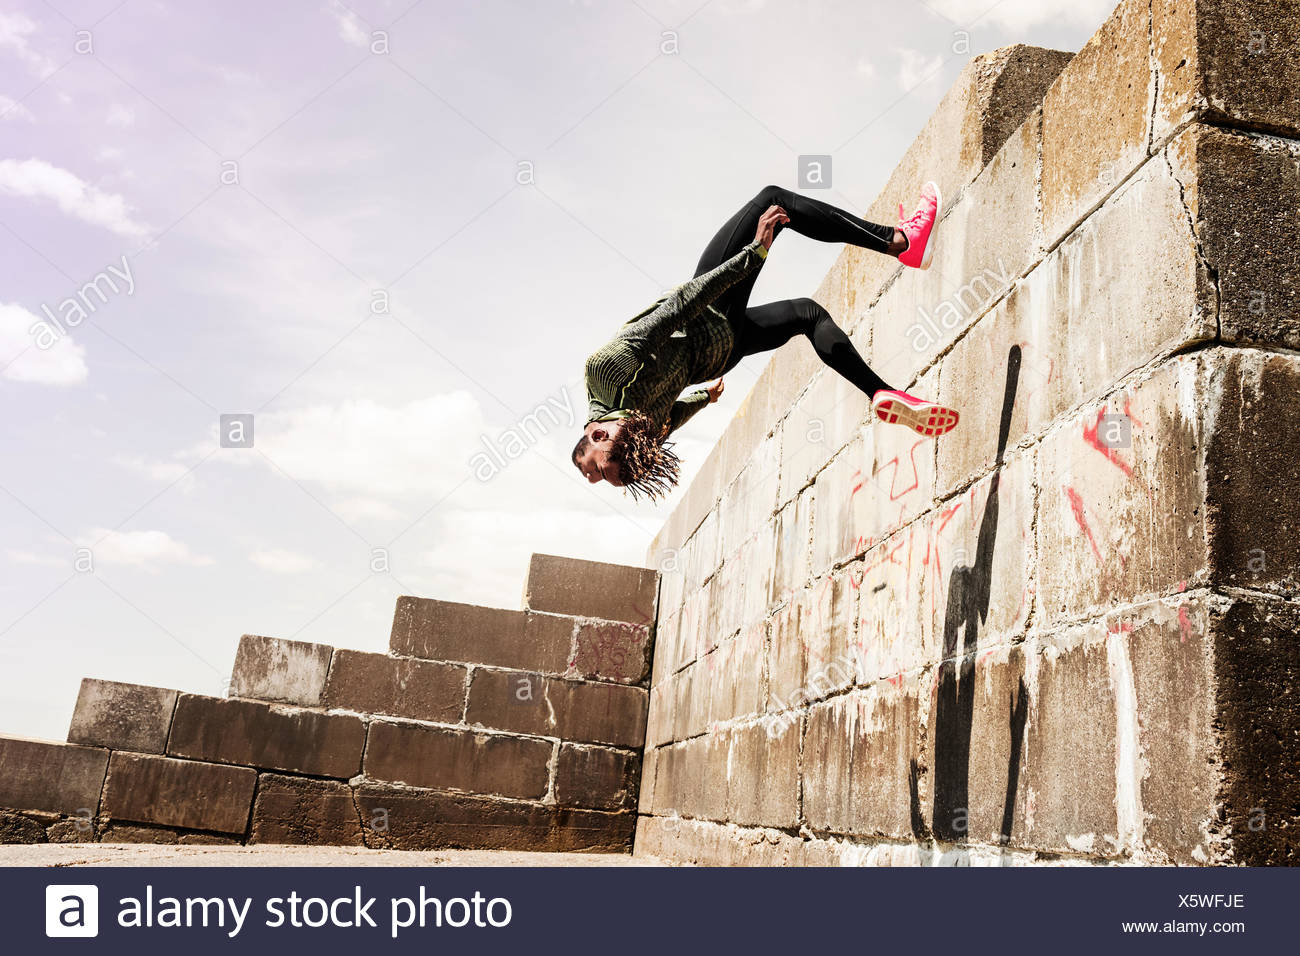 Young man, free running, outdoors, somersaulting from side of wall Stock Photo